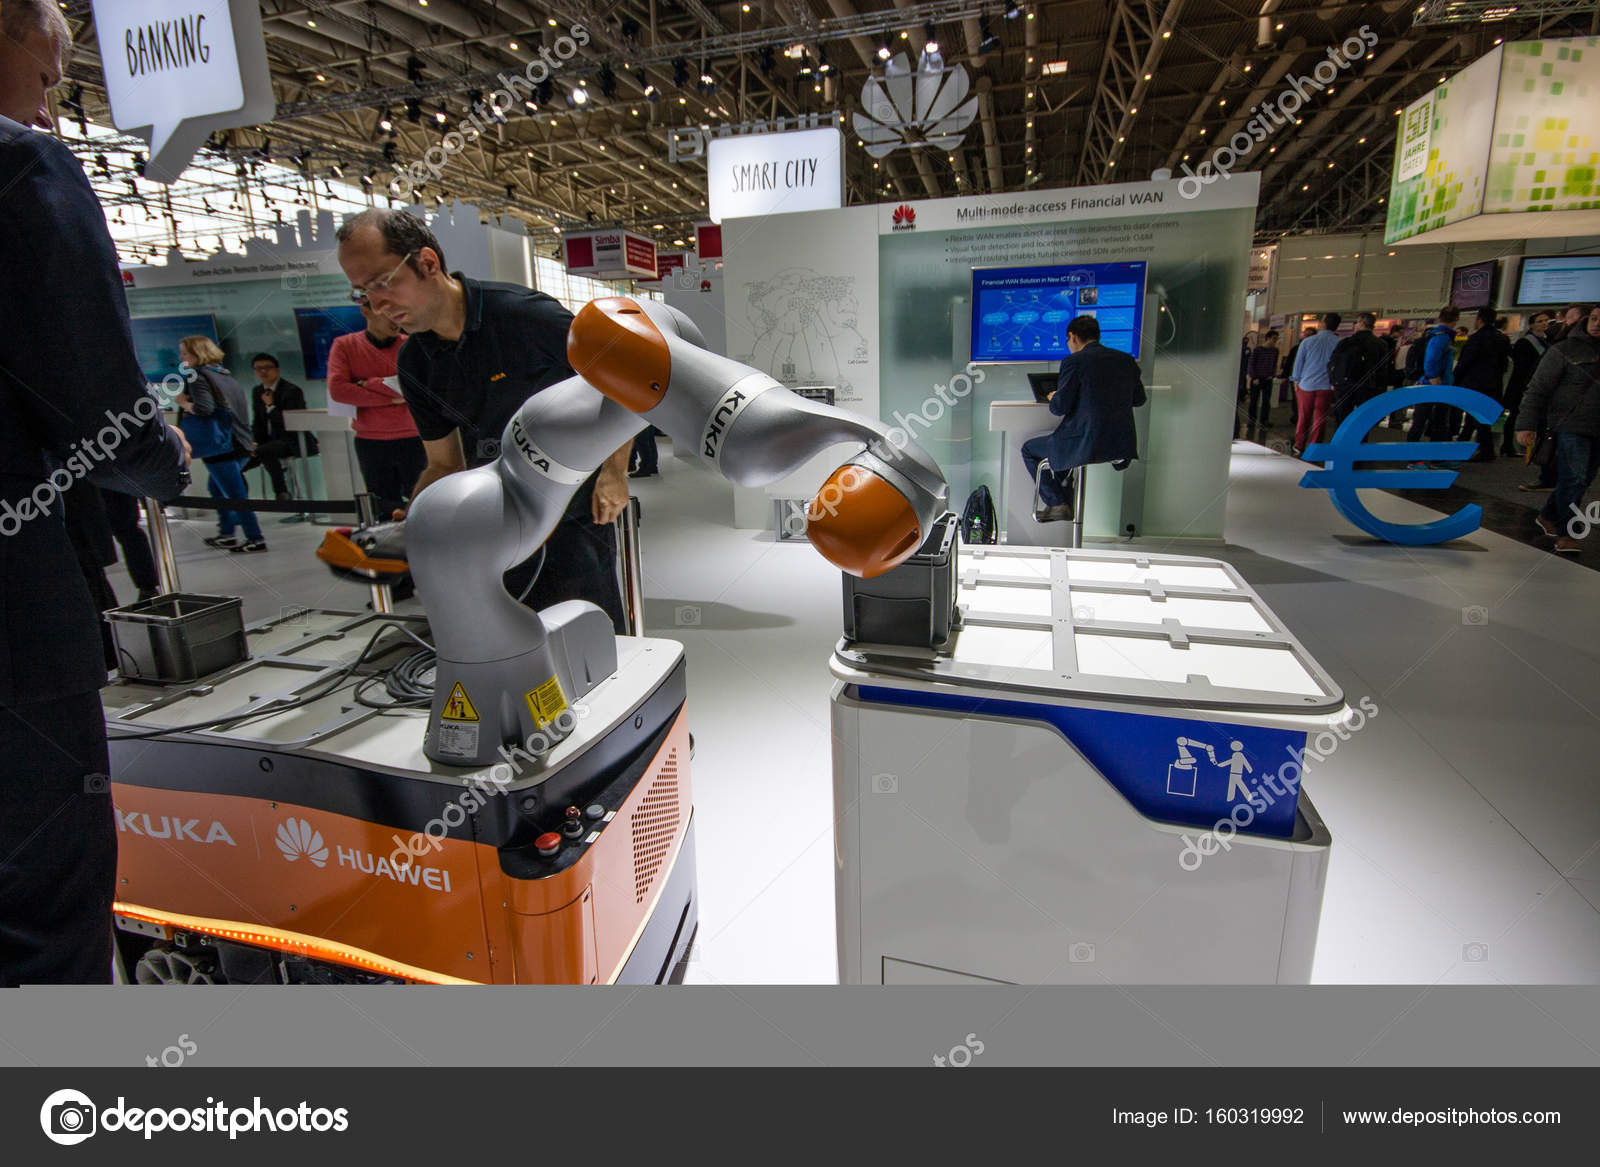 HANNOVER, GERMANY - MARCH 14, 2016: Engineer operates